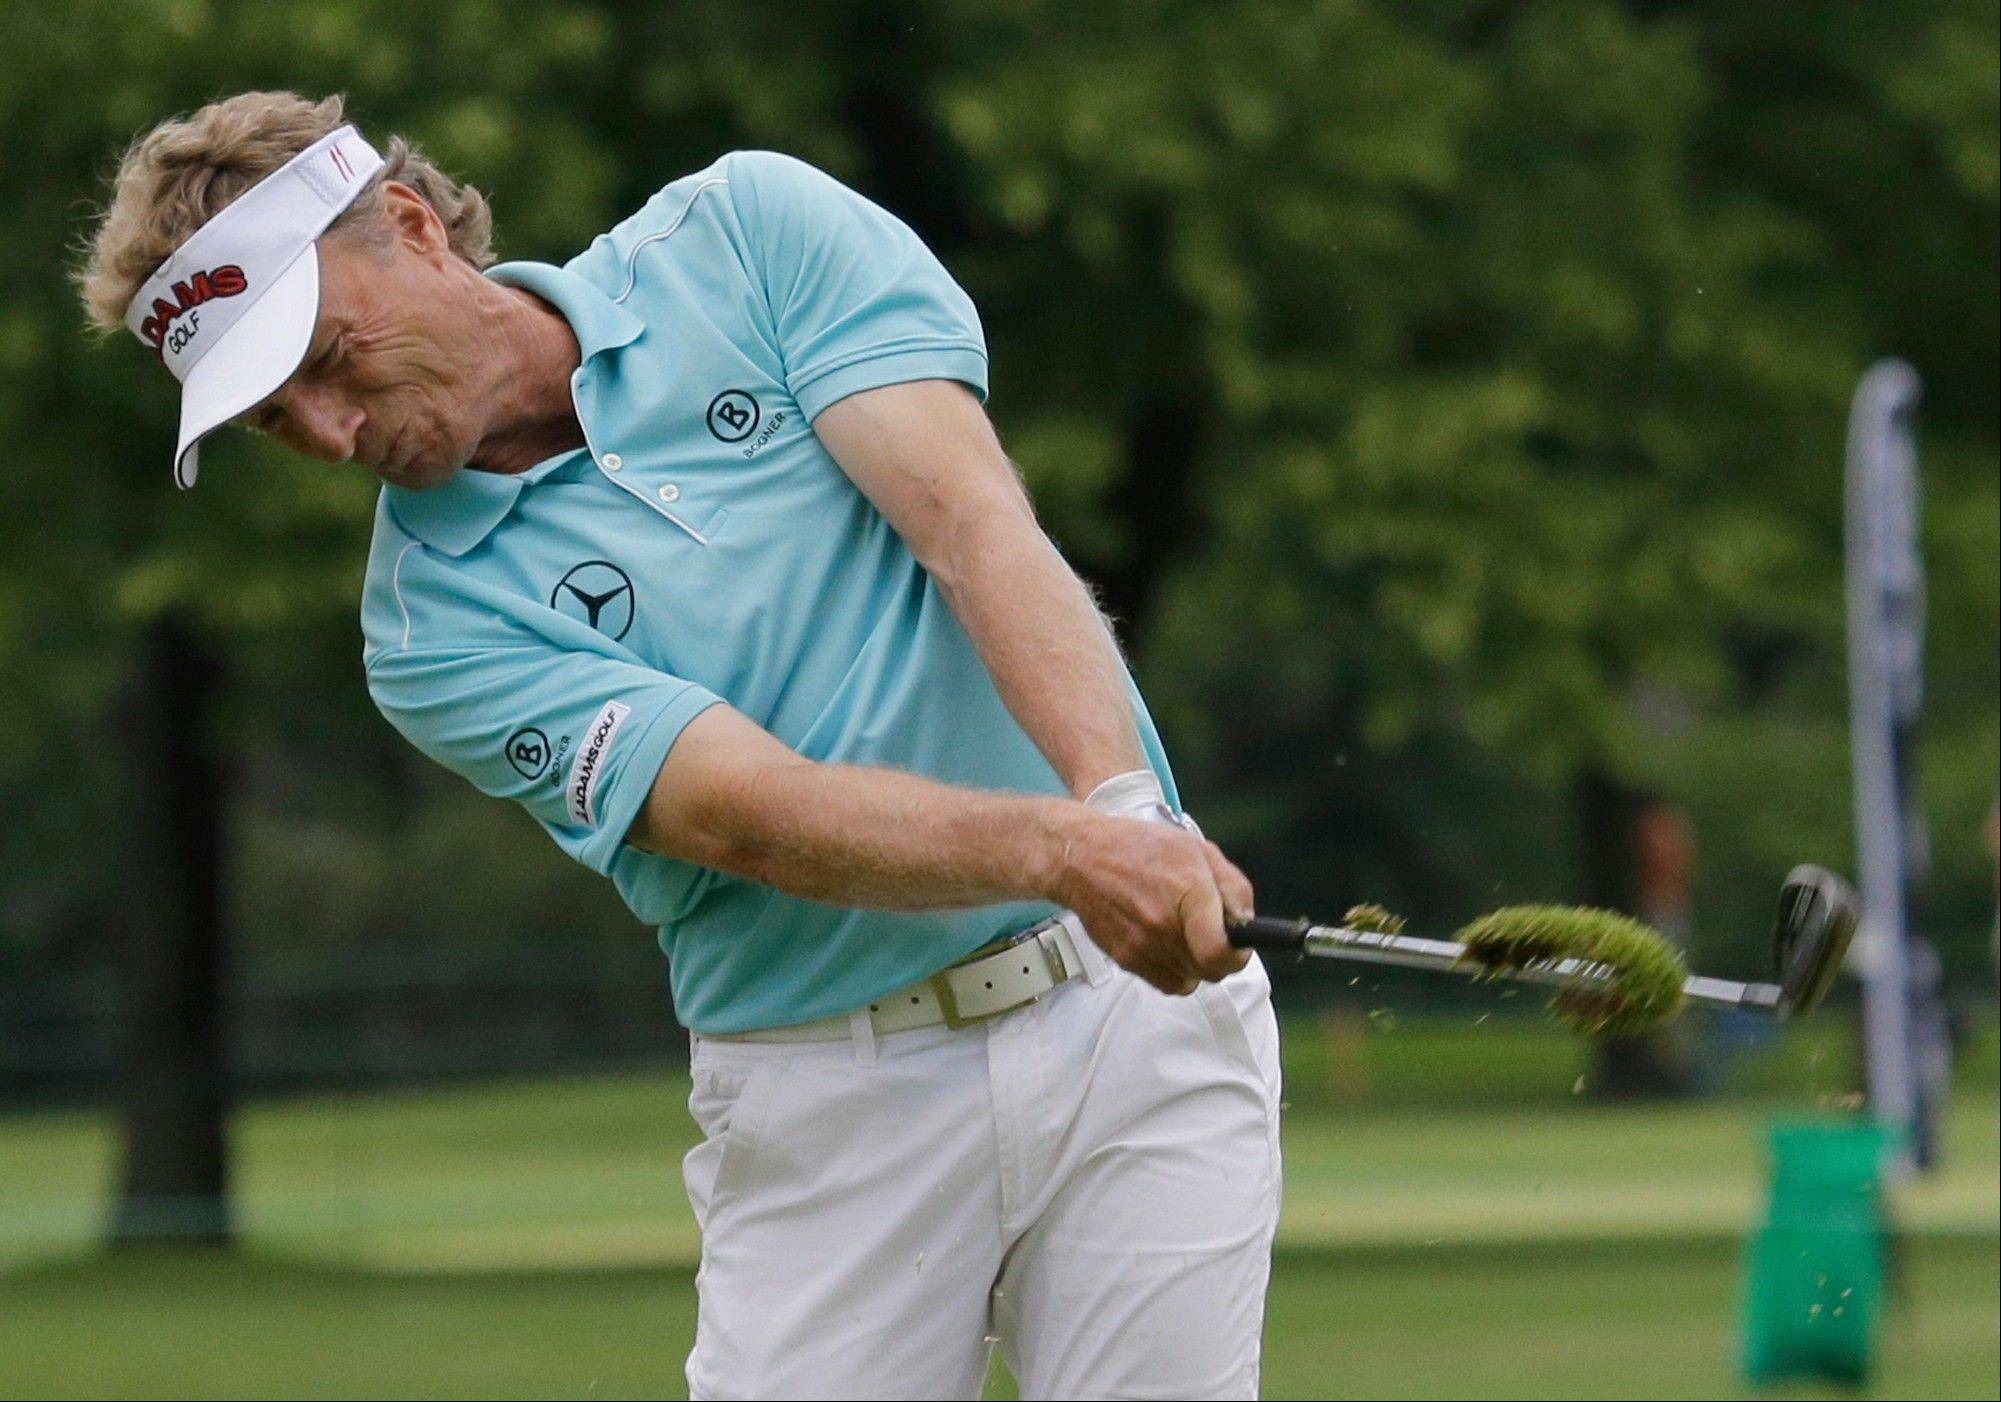 Bernhard Langer hits his second shot on the 18th fairway during the first round of the Encompass Championship golf tournament on Friday, June 21, 2013, in Glenview, Ill.